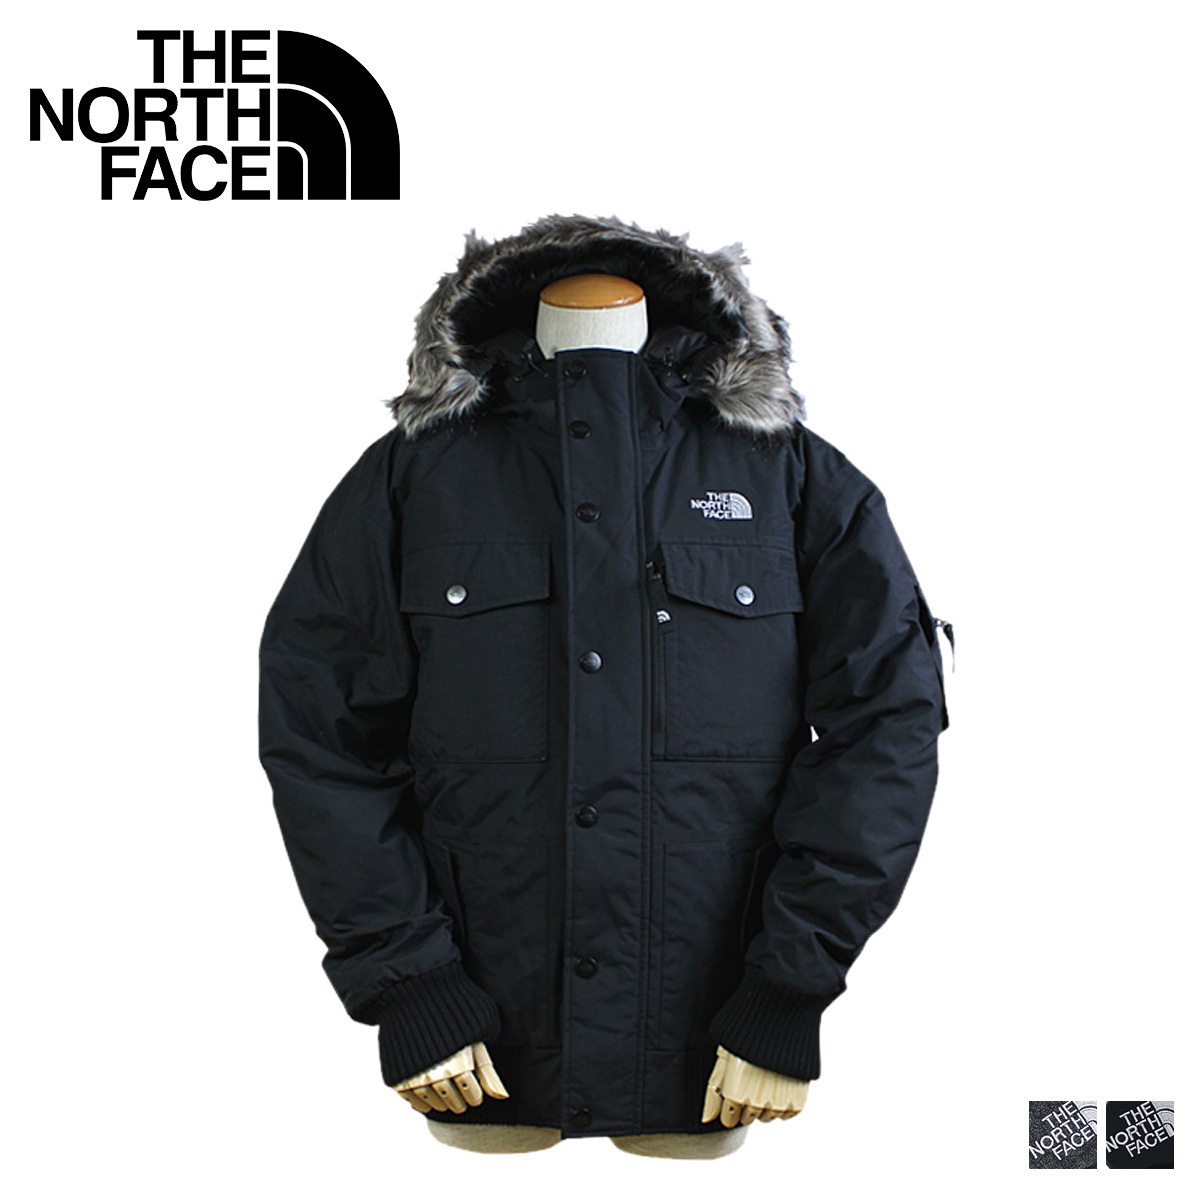 3ce8548928 ... inexpensive sold out the north face zip up jacket black gray a8xc gotham  jacket 46c81 03651